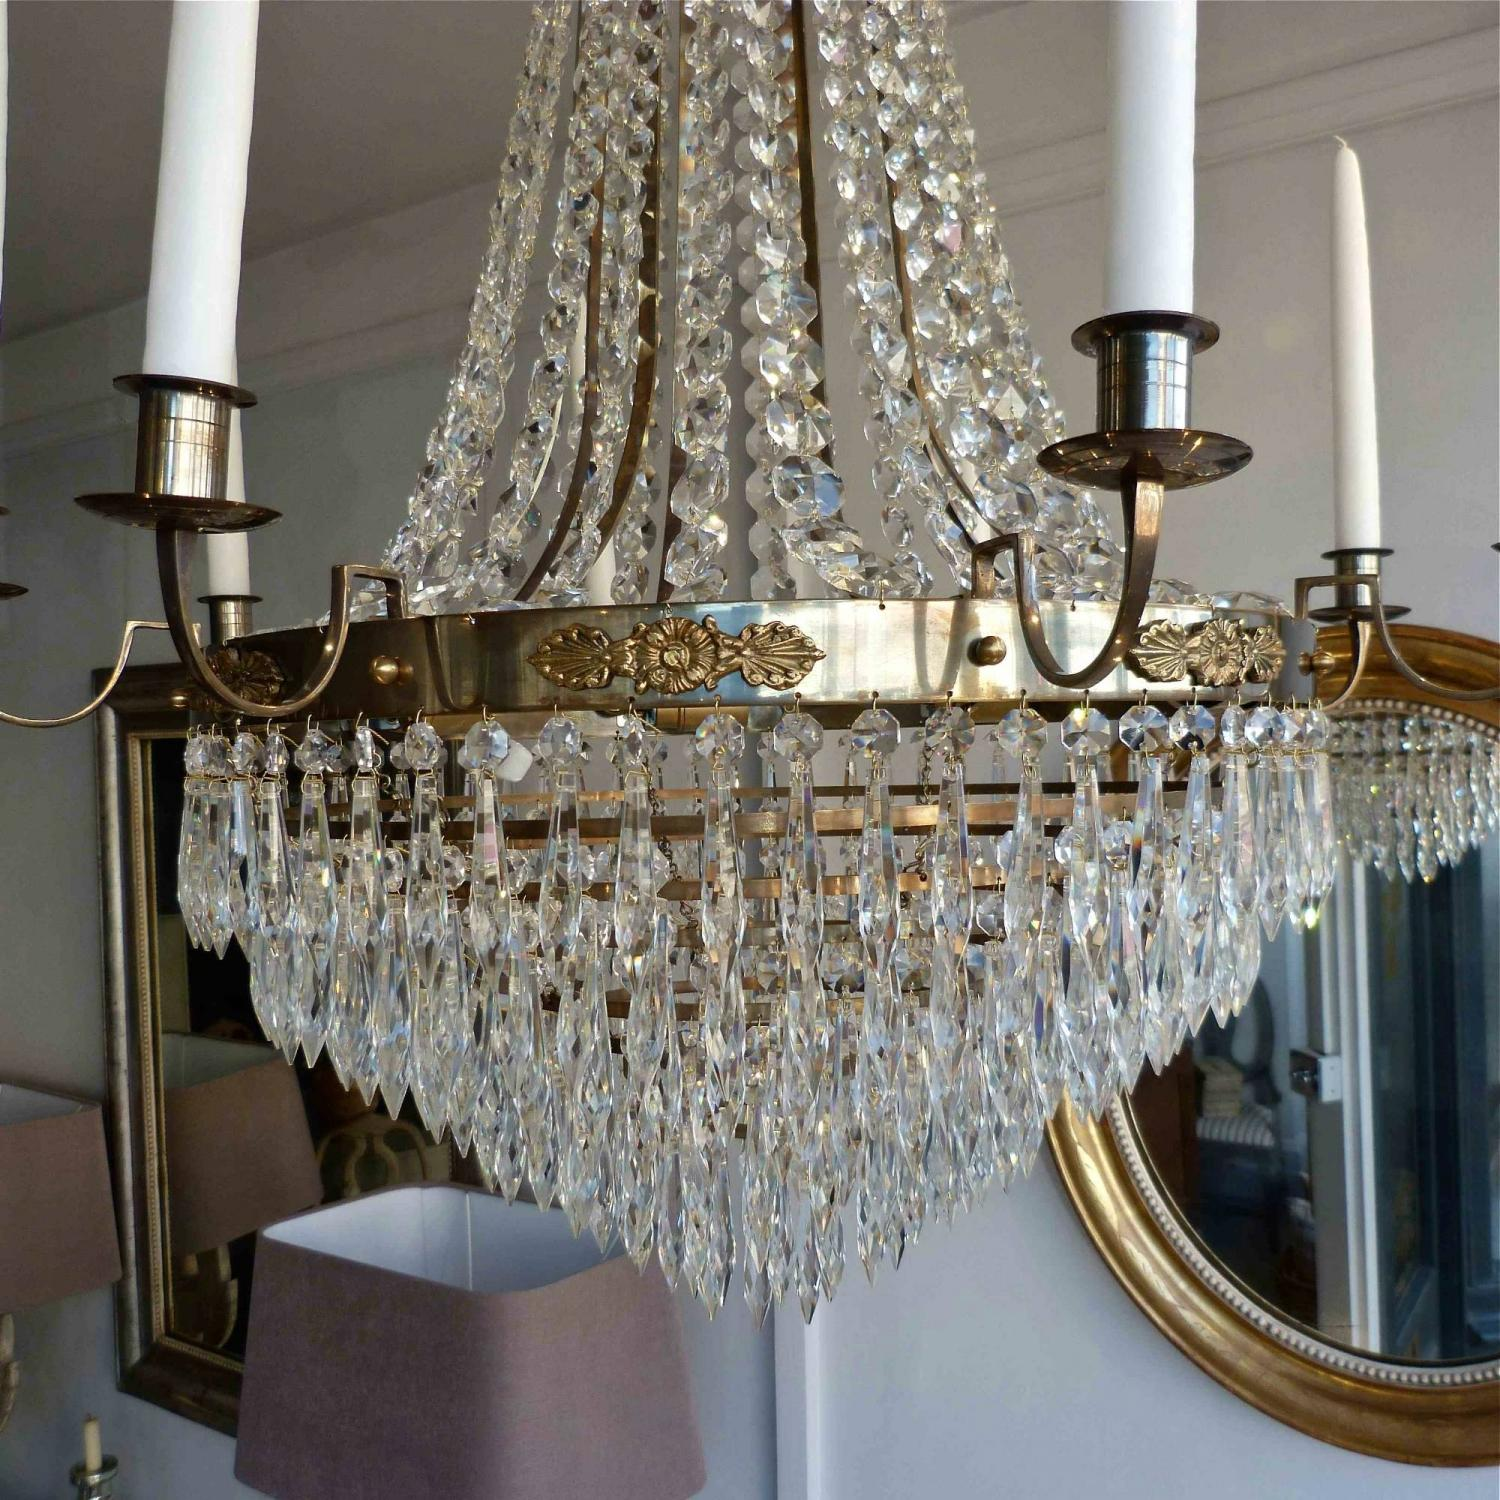 Magnificent pair of swedish gustavian style chandeliers in lighting magnificent pair of swedish gustavian style chandeliers picture 2 arubaitofo Image collections